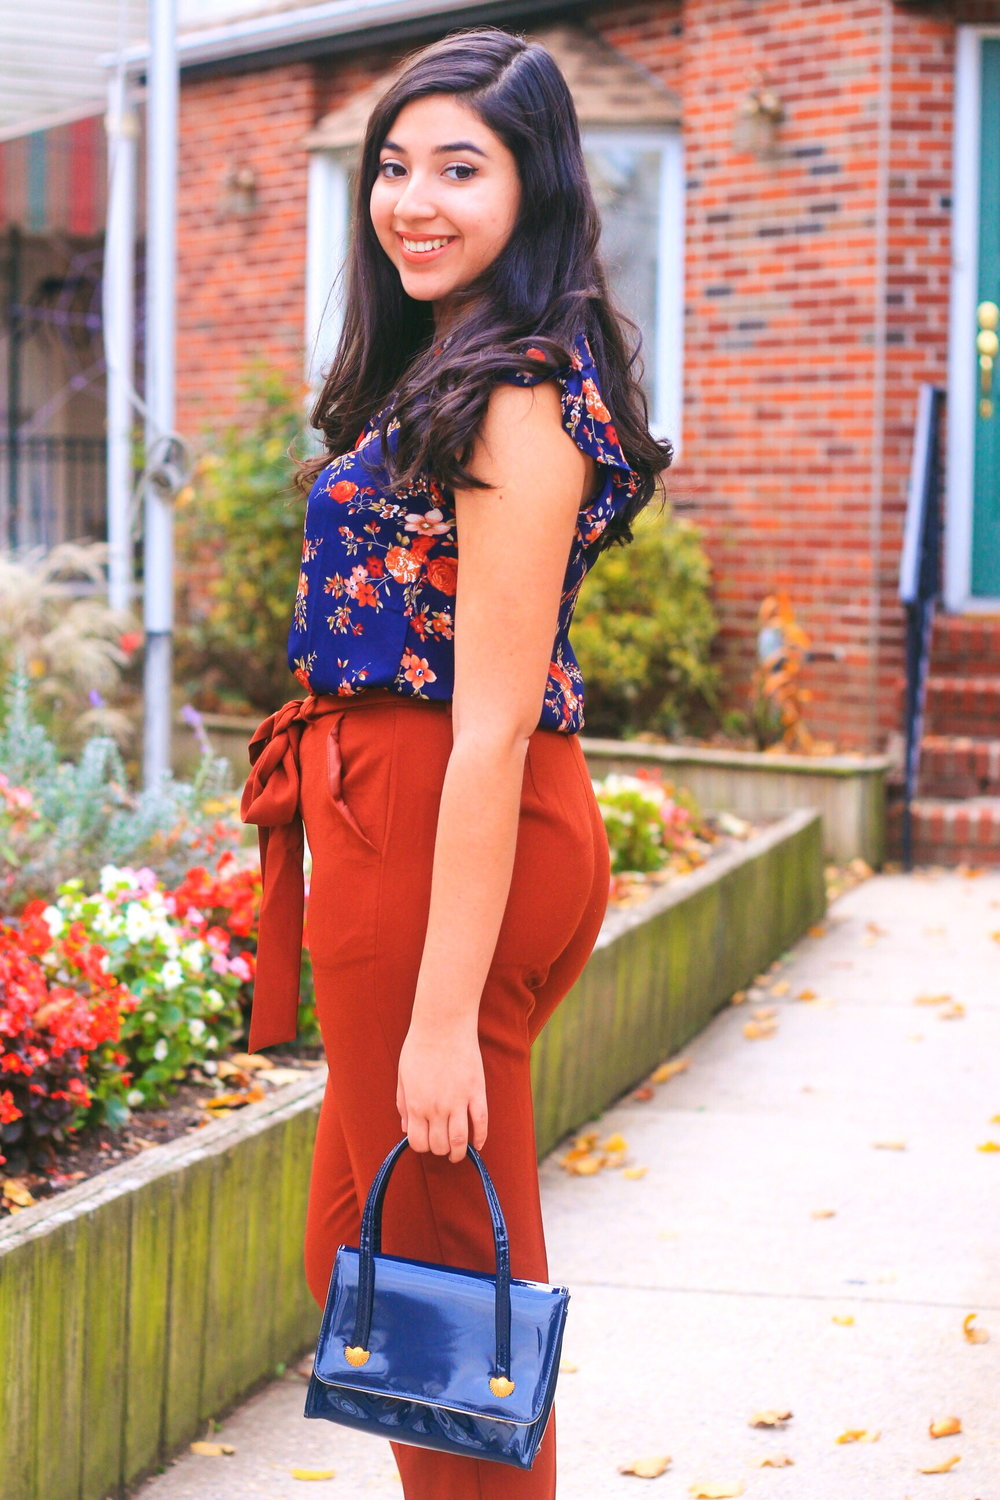 Let's face it, we all have many things to focus on during the holiday season, so today I am rounding up 10 Thanksgiving outfit ideas to make picking out your Thanksgiving look as easy as pie.Thanksgiving, Thanksgiving outfit ideas, outfit ideas, ootd, Thanksgiving ootd, style, fashion, Thanksgiving style, Thanksgiving fashion, Outfits for Thanksgiving, Thanksgiving day outfits, What to wear on Thanksgiving, What to wear for Thanksgiving, Easy outfit ideas for Thanksgiving, Easy outfits for Thanksgiving, Forever 21, Asos, Modcloth, Newlook, Nordstrom